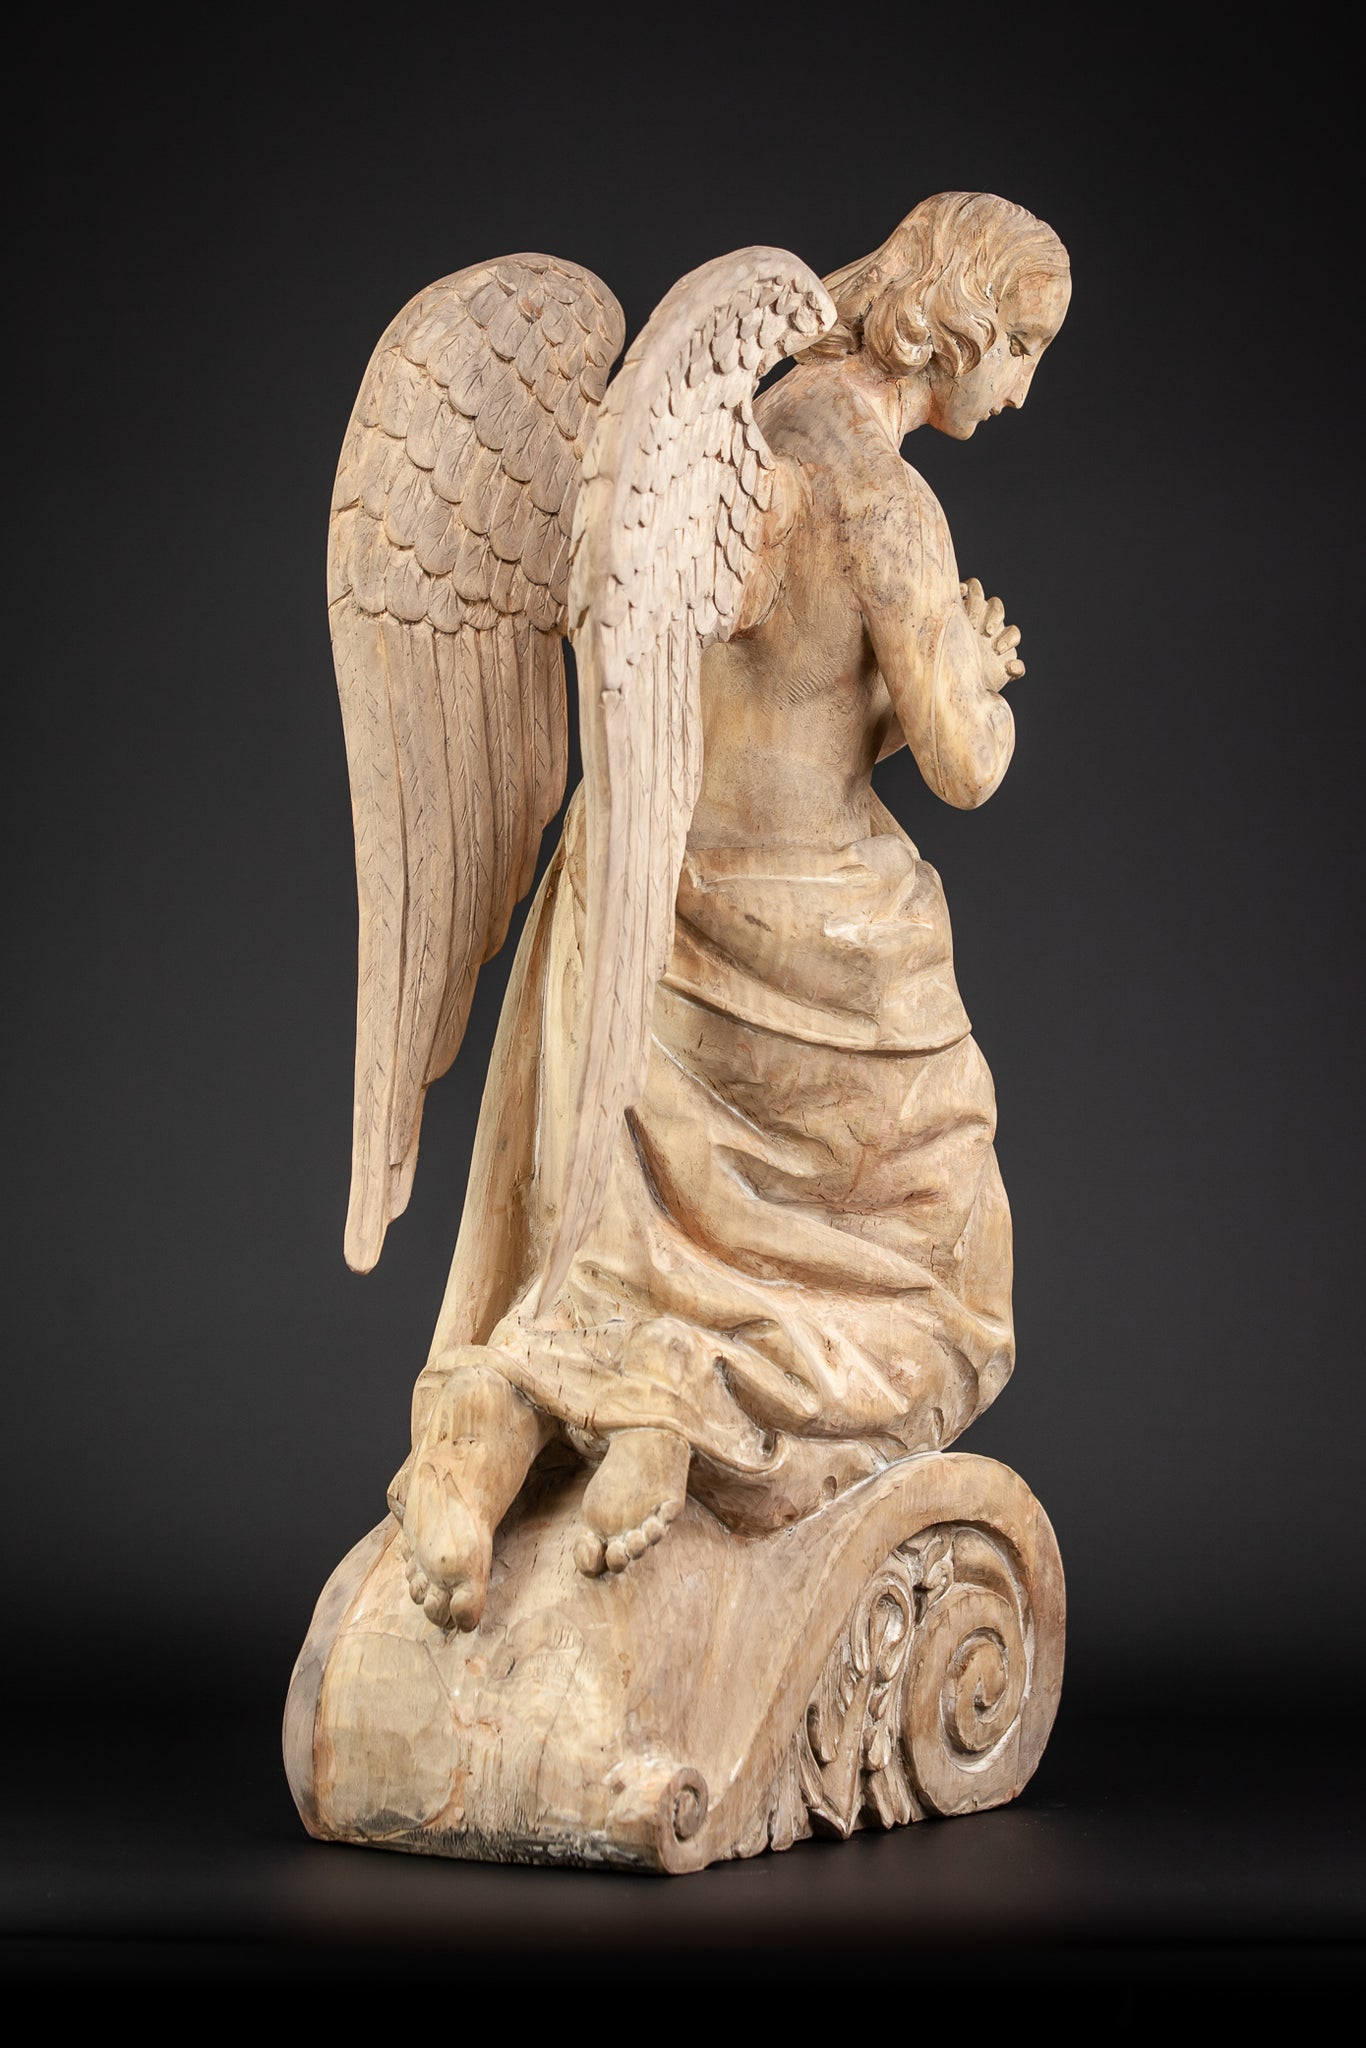 Archangel Wood Carving 1600s / 1700s Wooden 23.2""